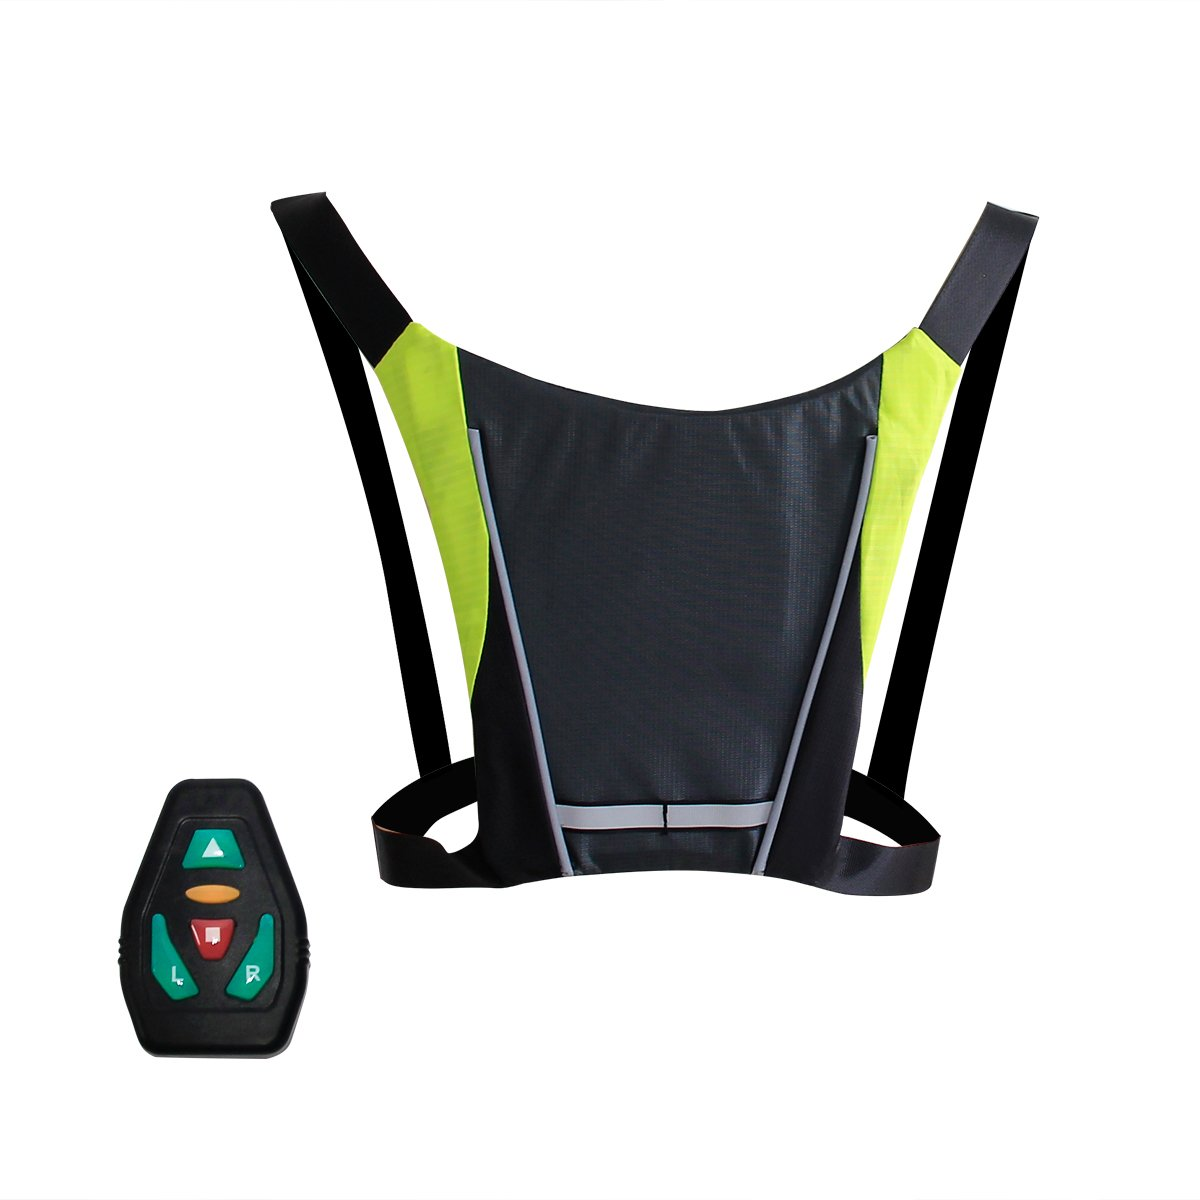 UBOWAY LED Indicator Backpack - Rechargeable Outdoor Sports Safety Vest Direction Indicator for Night Riding, Cycling, Running, Walking, Jogging